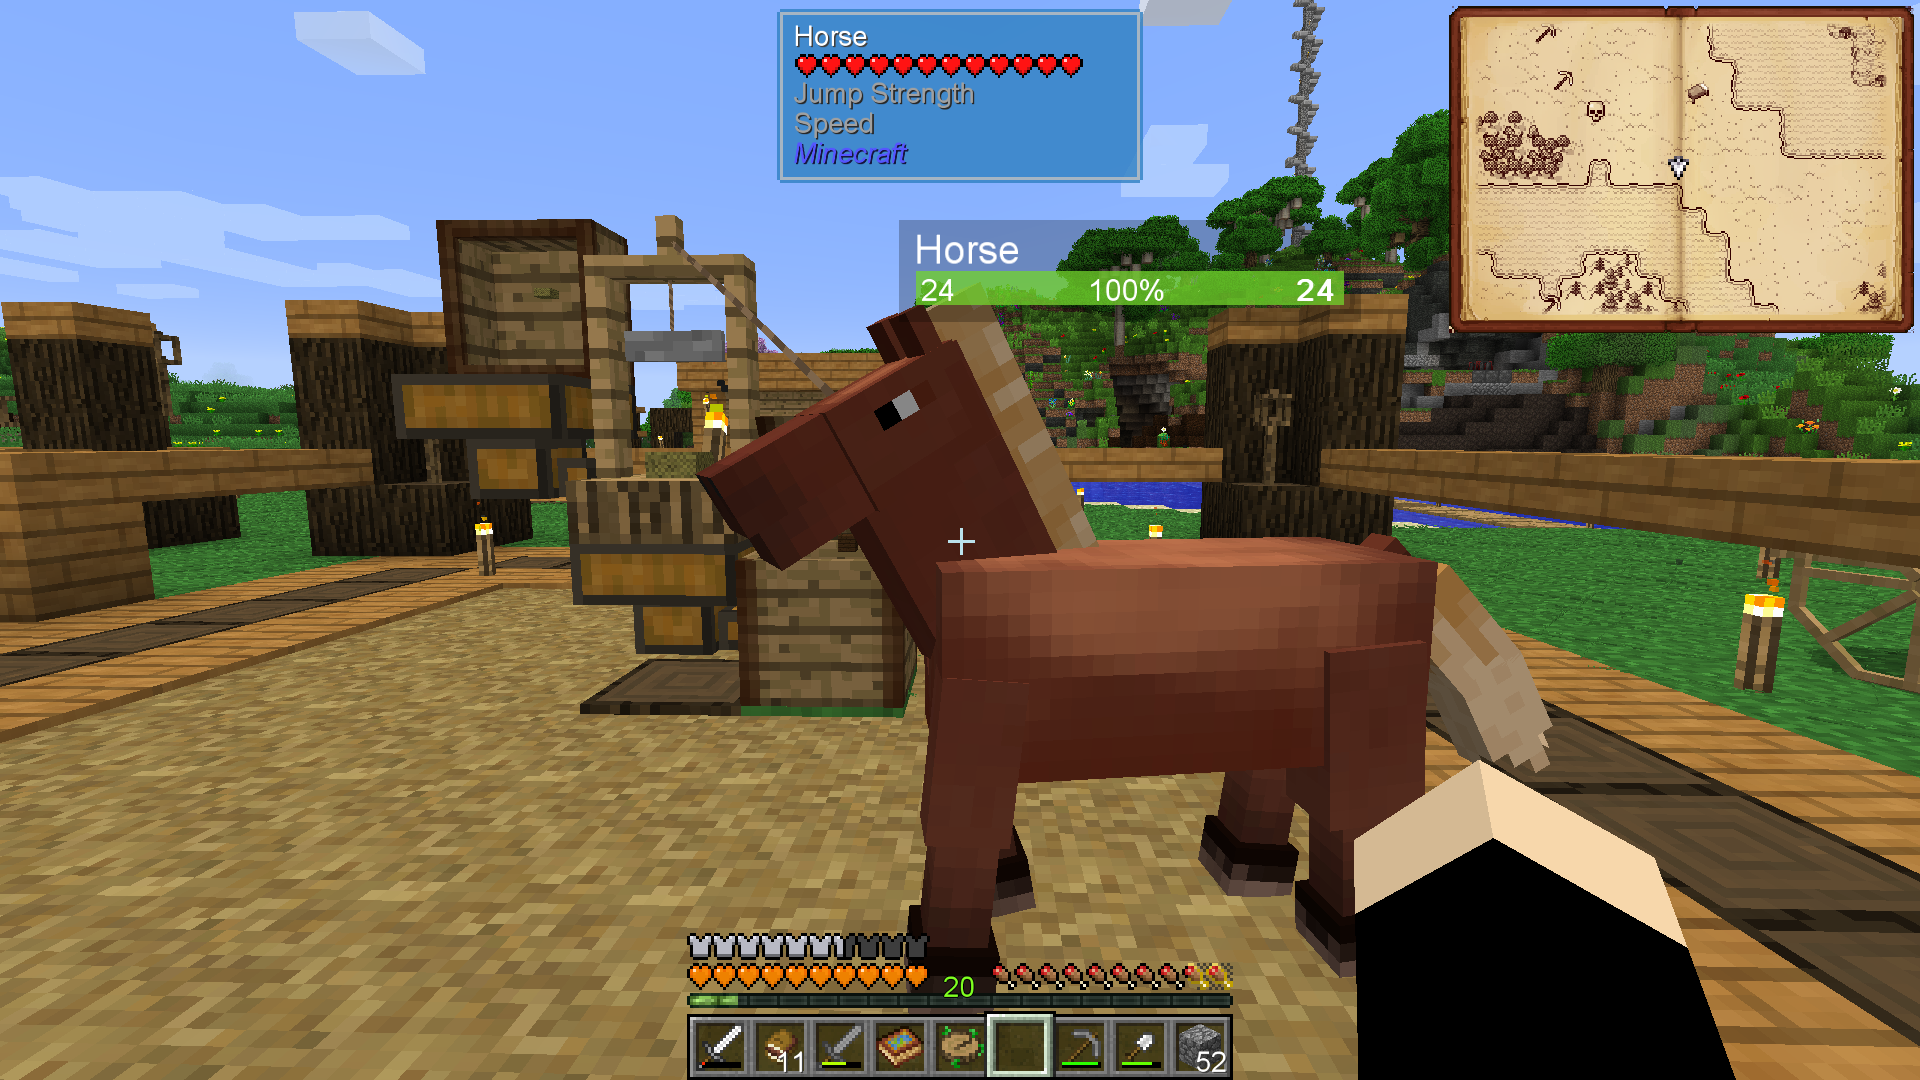 Horse Status Not Appearing In Waila Issue 2320 Darkpacks Sevtech Ages Github